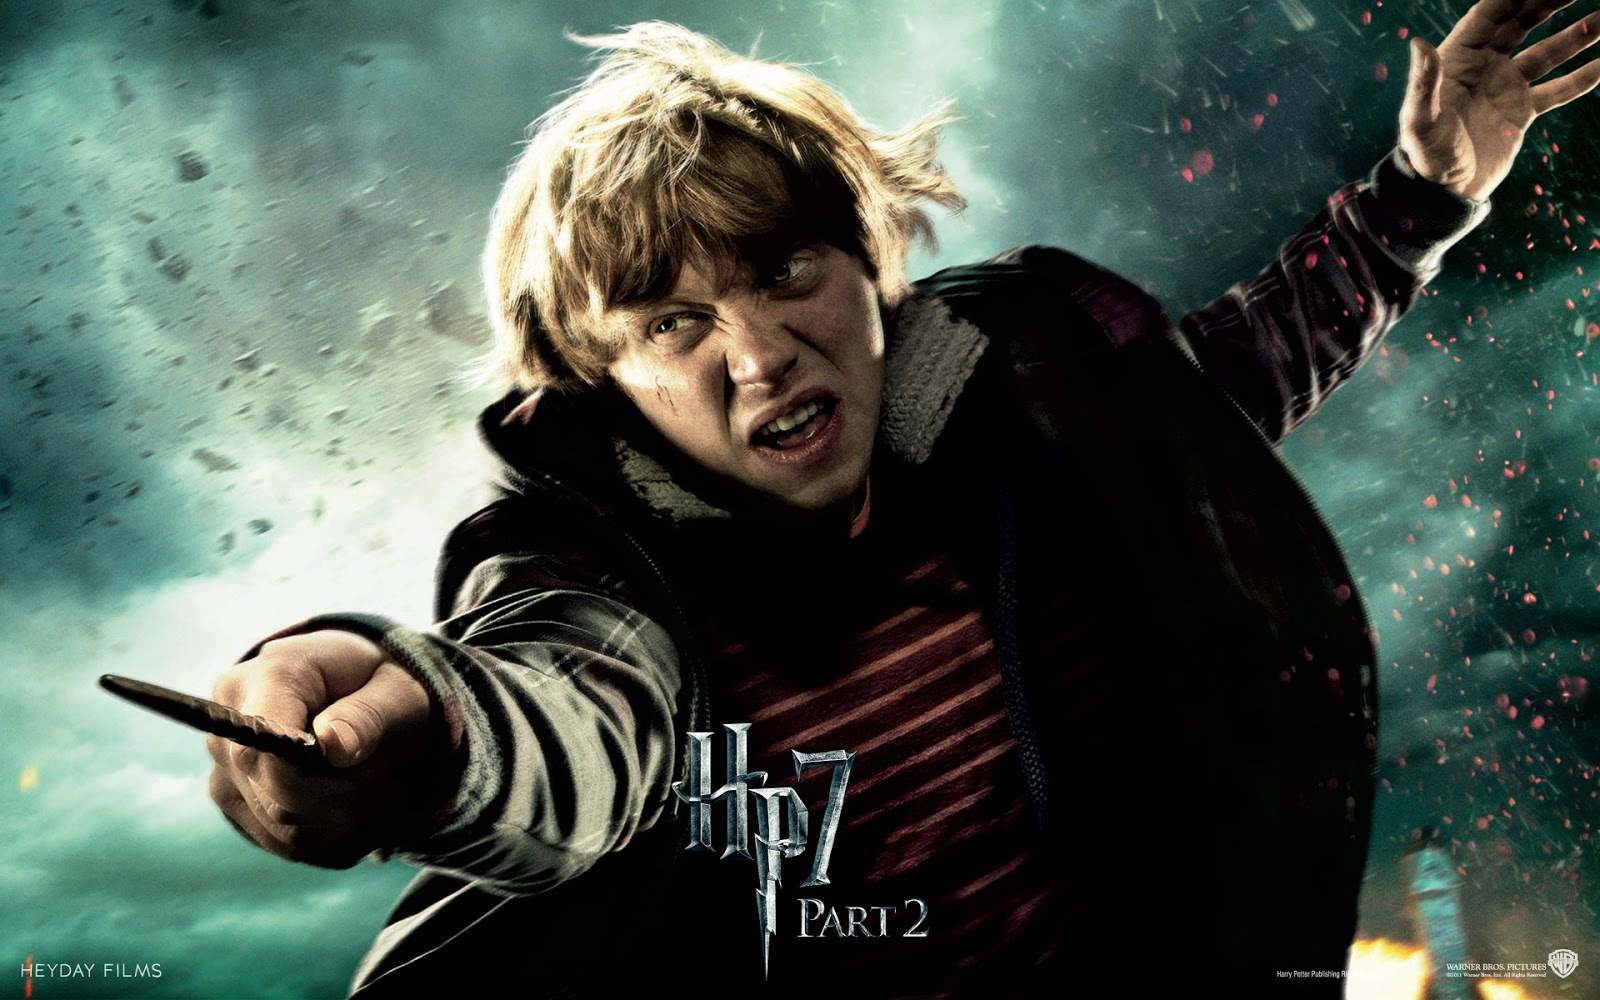 Harry Potter y las Reliquias de la Muerte: Wallpaper de Harry Potter 7 Parte 2